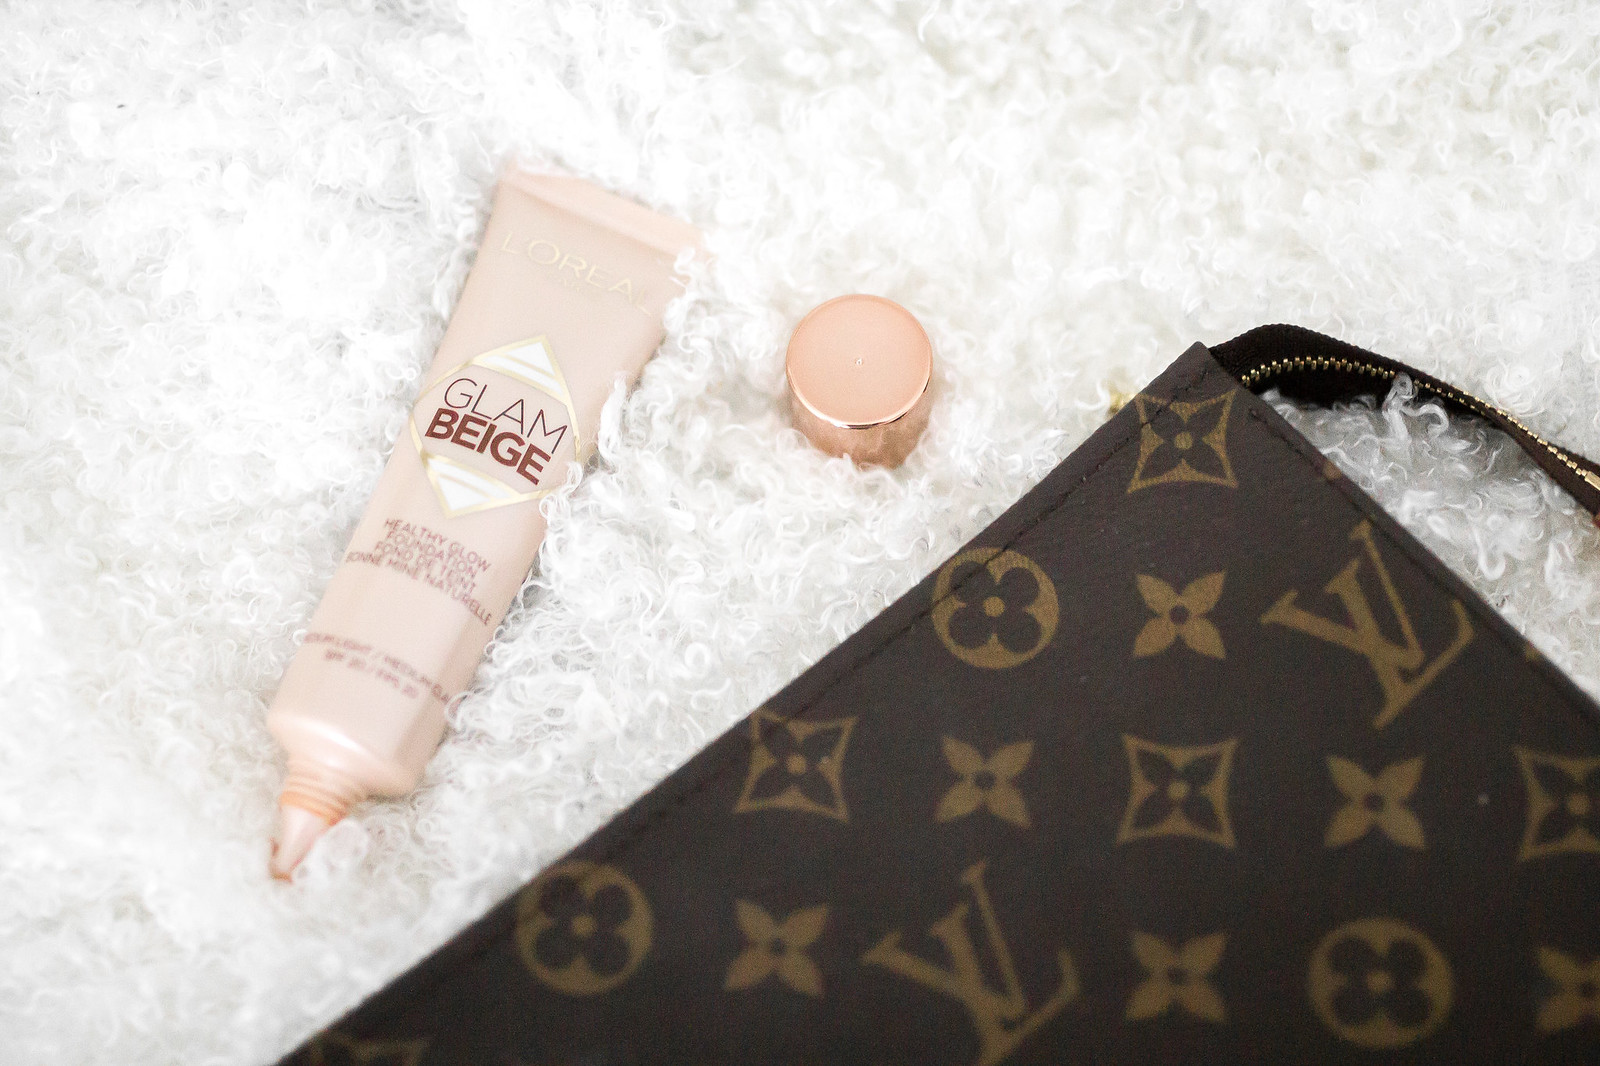 louis vuitton make up bag